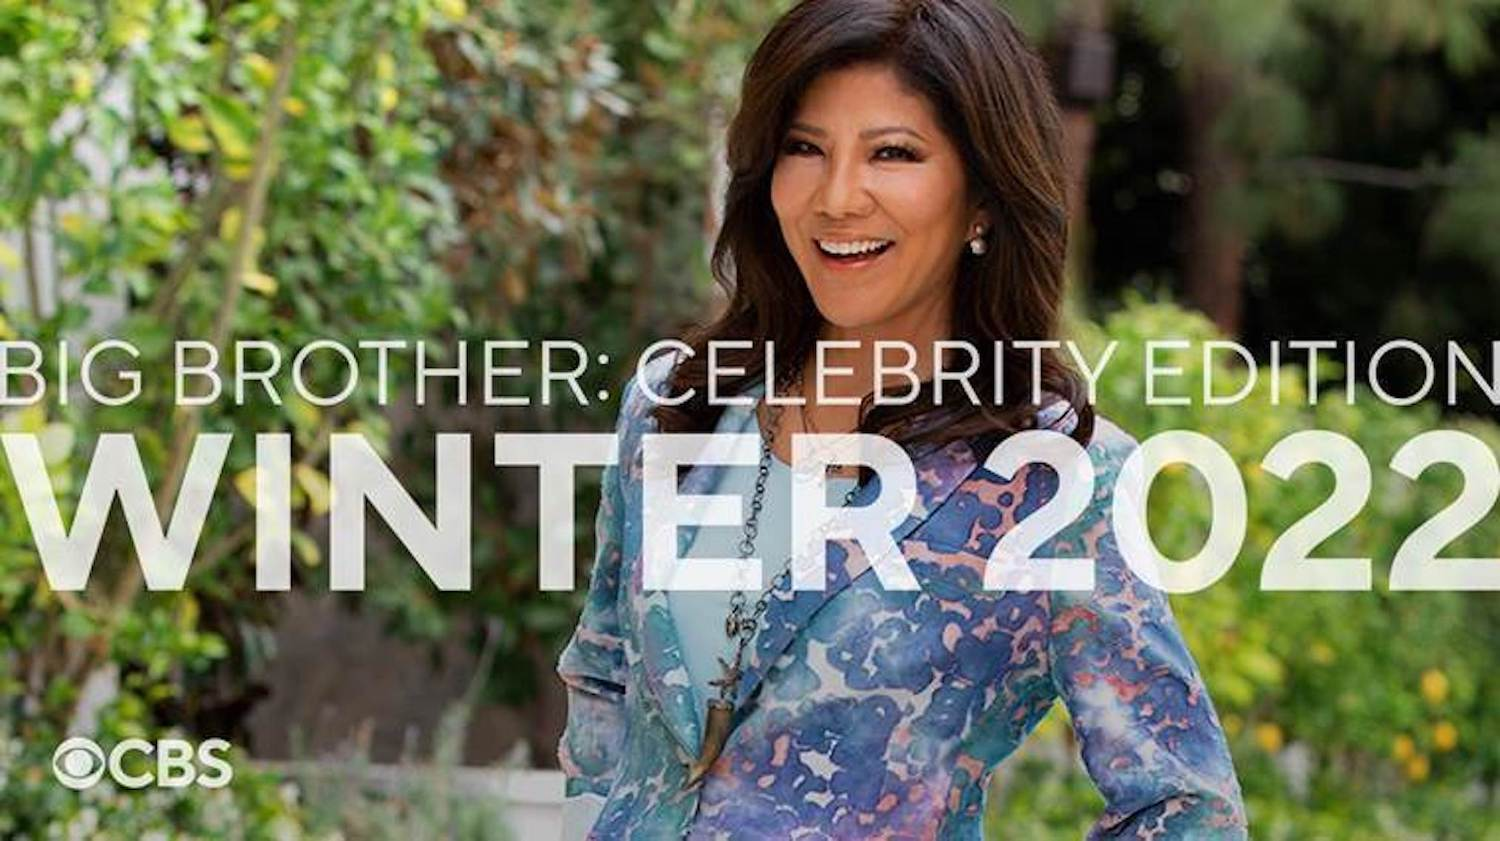 Julie Chen Moonves for Big Brother Celebrity Edition